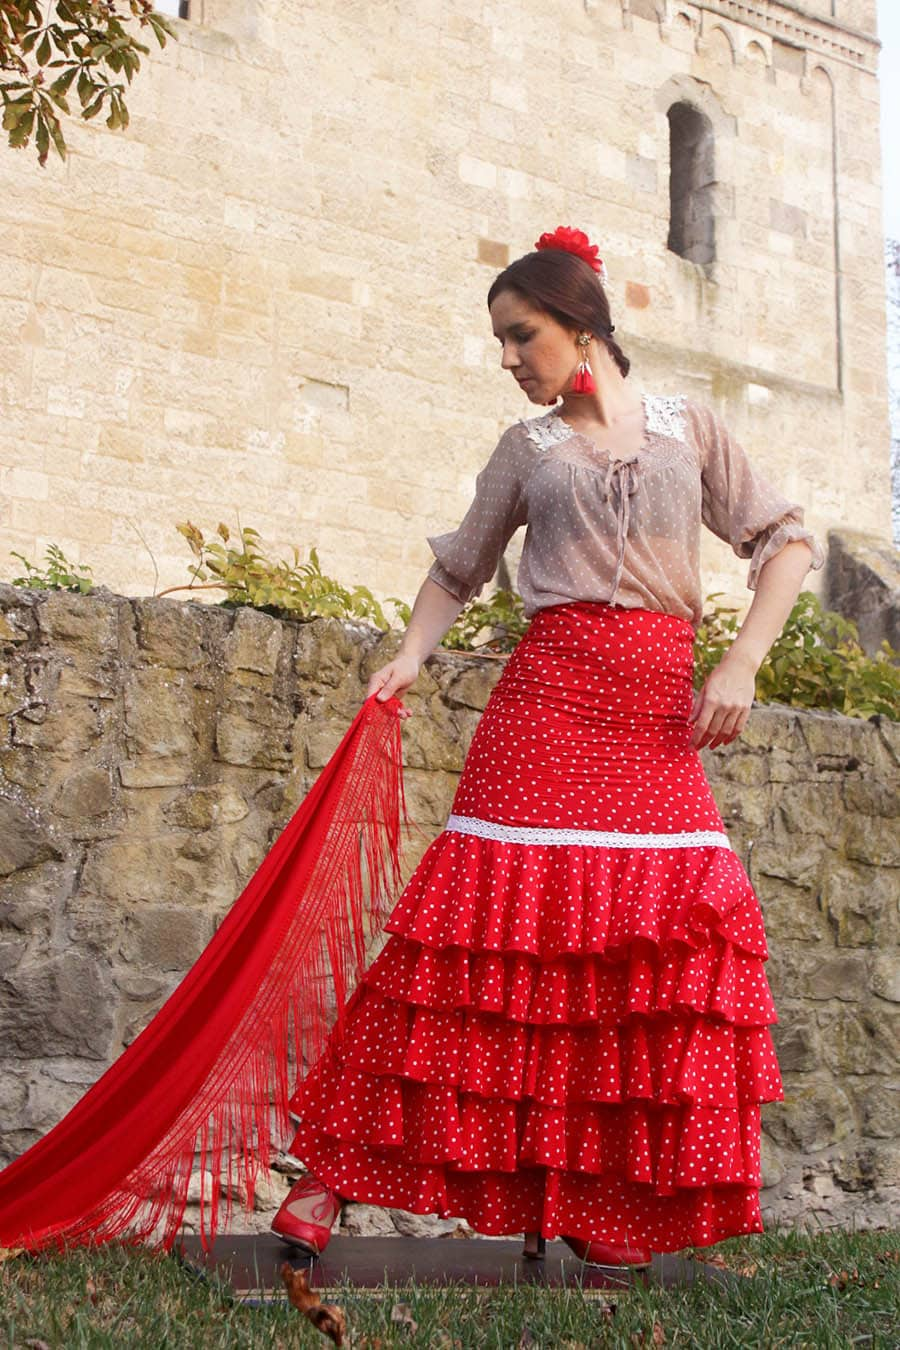 Product Alegria Skirt from the unique and conscious flamenco collection Brisa - one of our eye-catching flamenco skirt